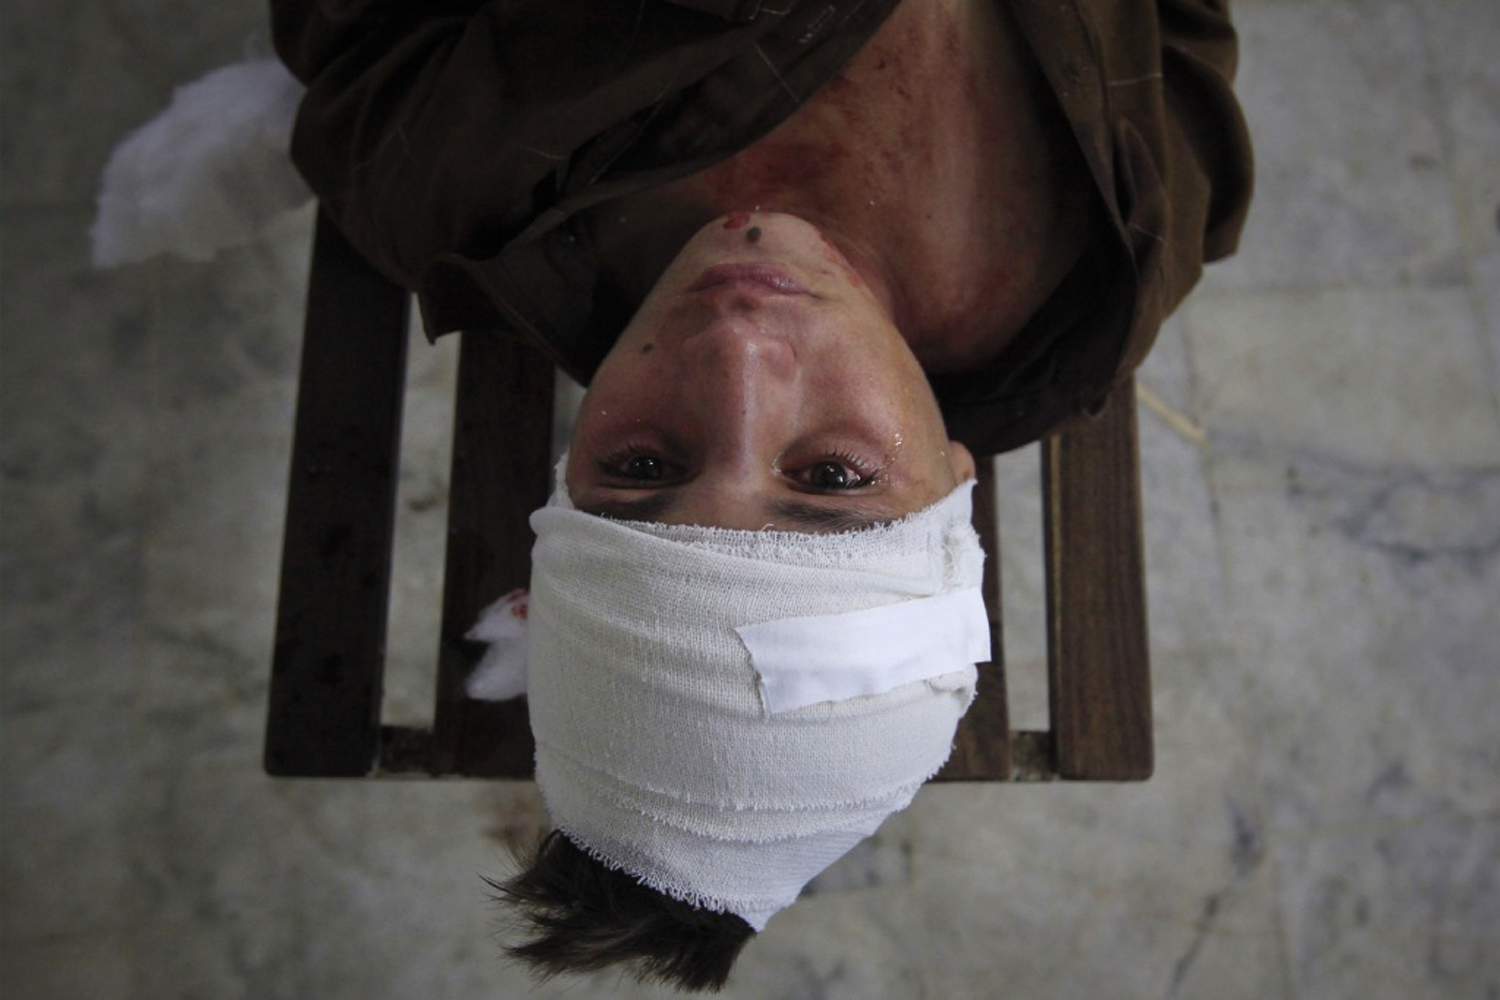 September 13, 2011. A tear runs down a boy's face as he lies on a bench after being treated for his injuries at the Lady Reading Hospital in Peshawar. Gunmen opened fire on a school bus in the Pakistani city of Peshawar, killing at least three children and the driver. 15 children were wounded.